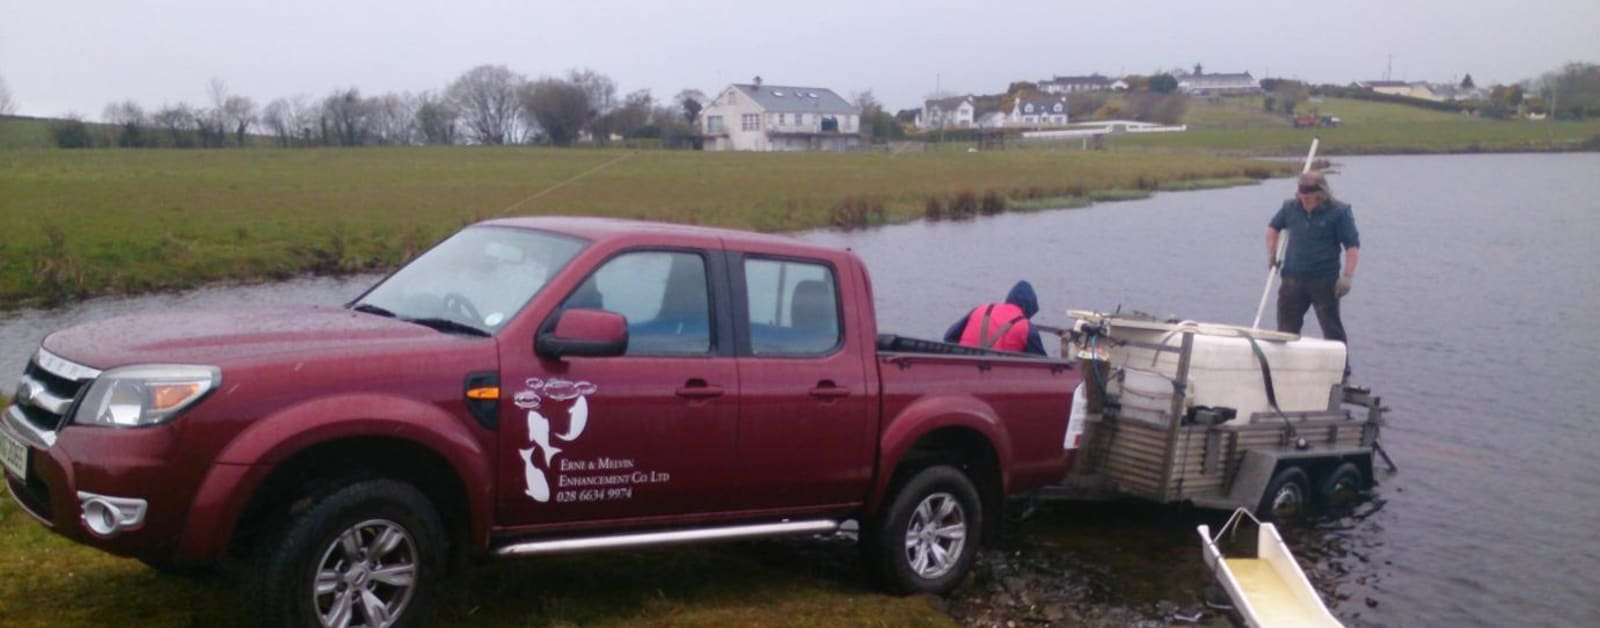 Extern take delivery of 500 Lough Trout at the site of our new Fishing Village